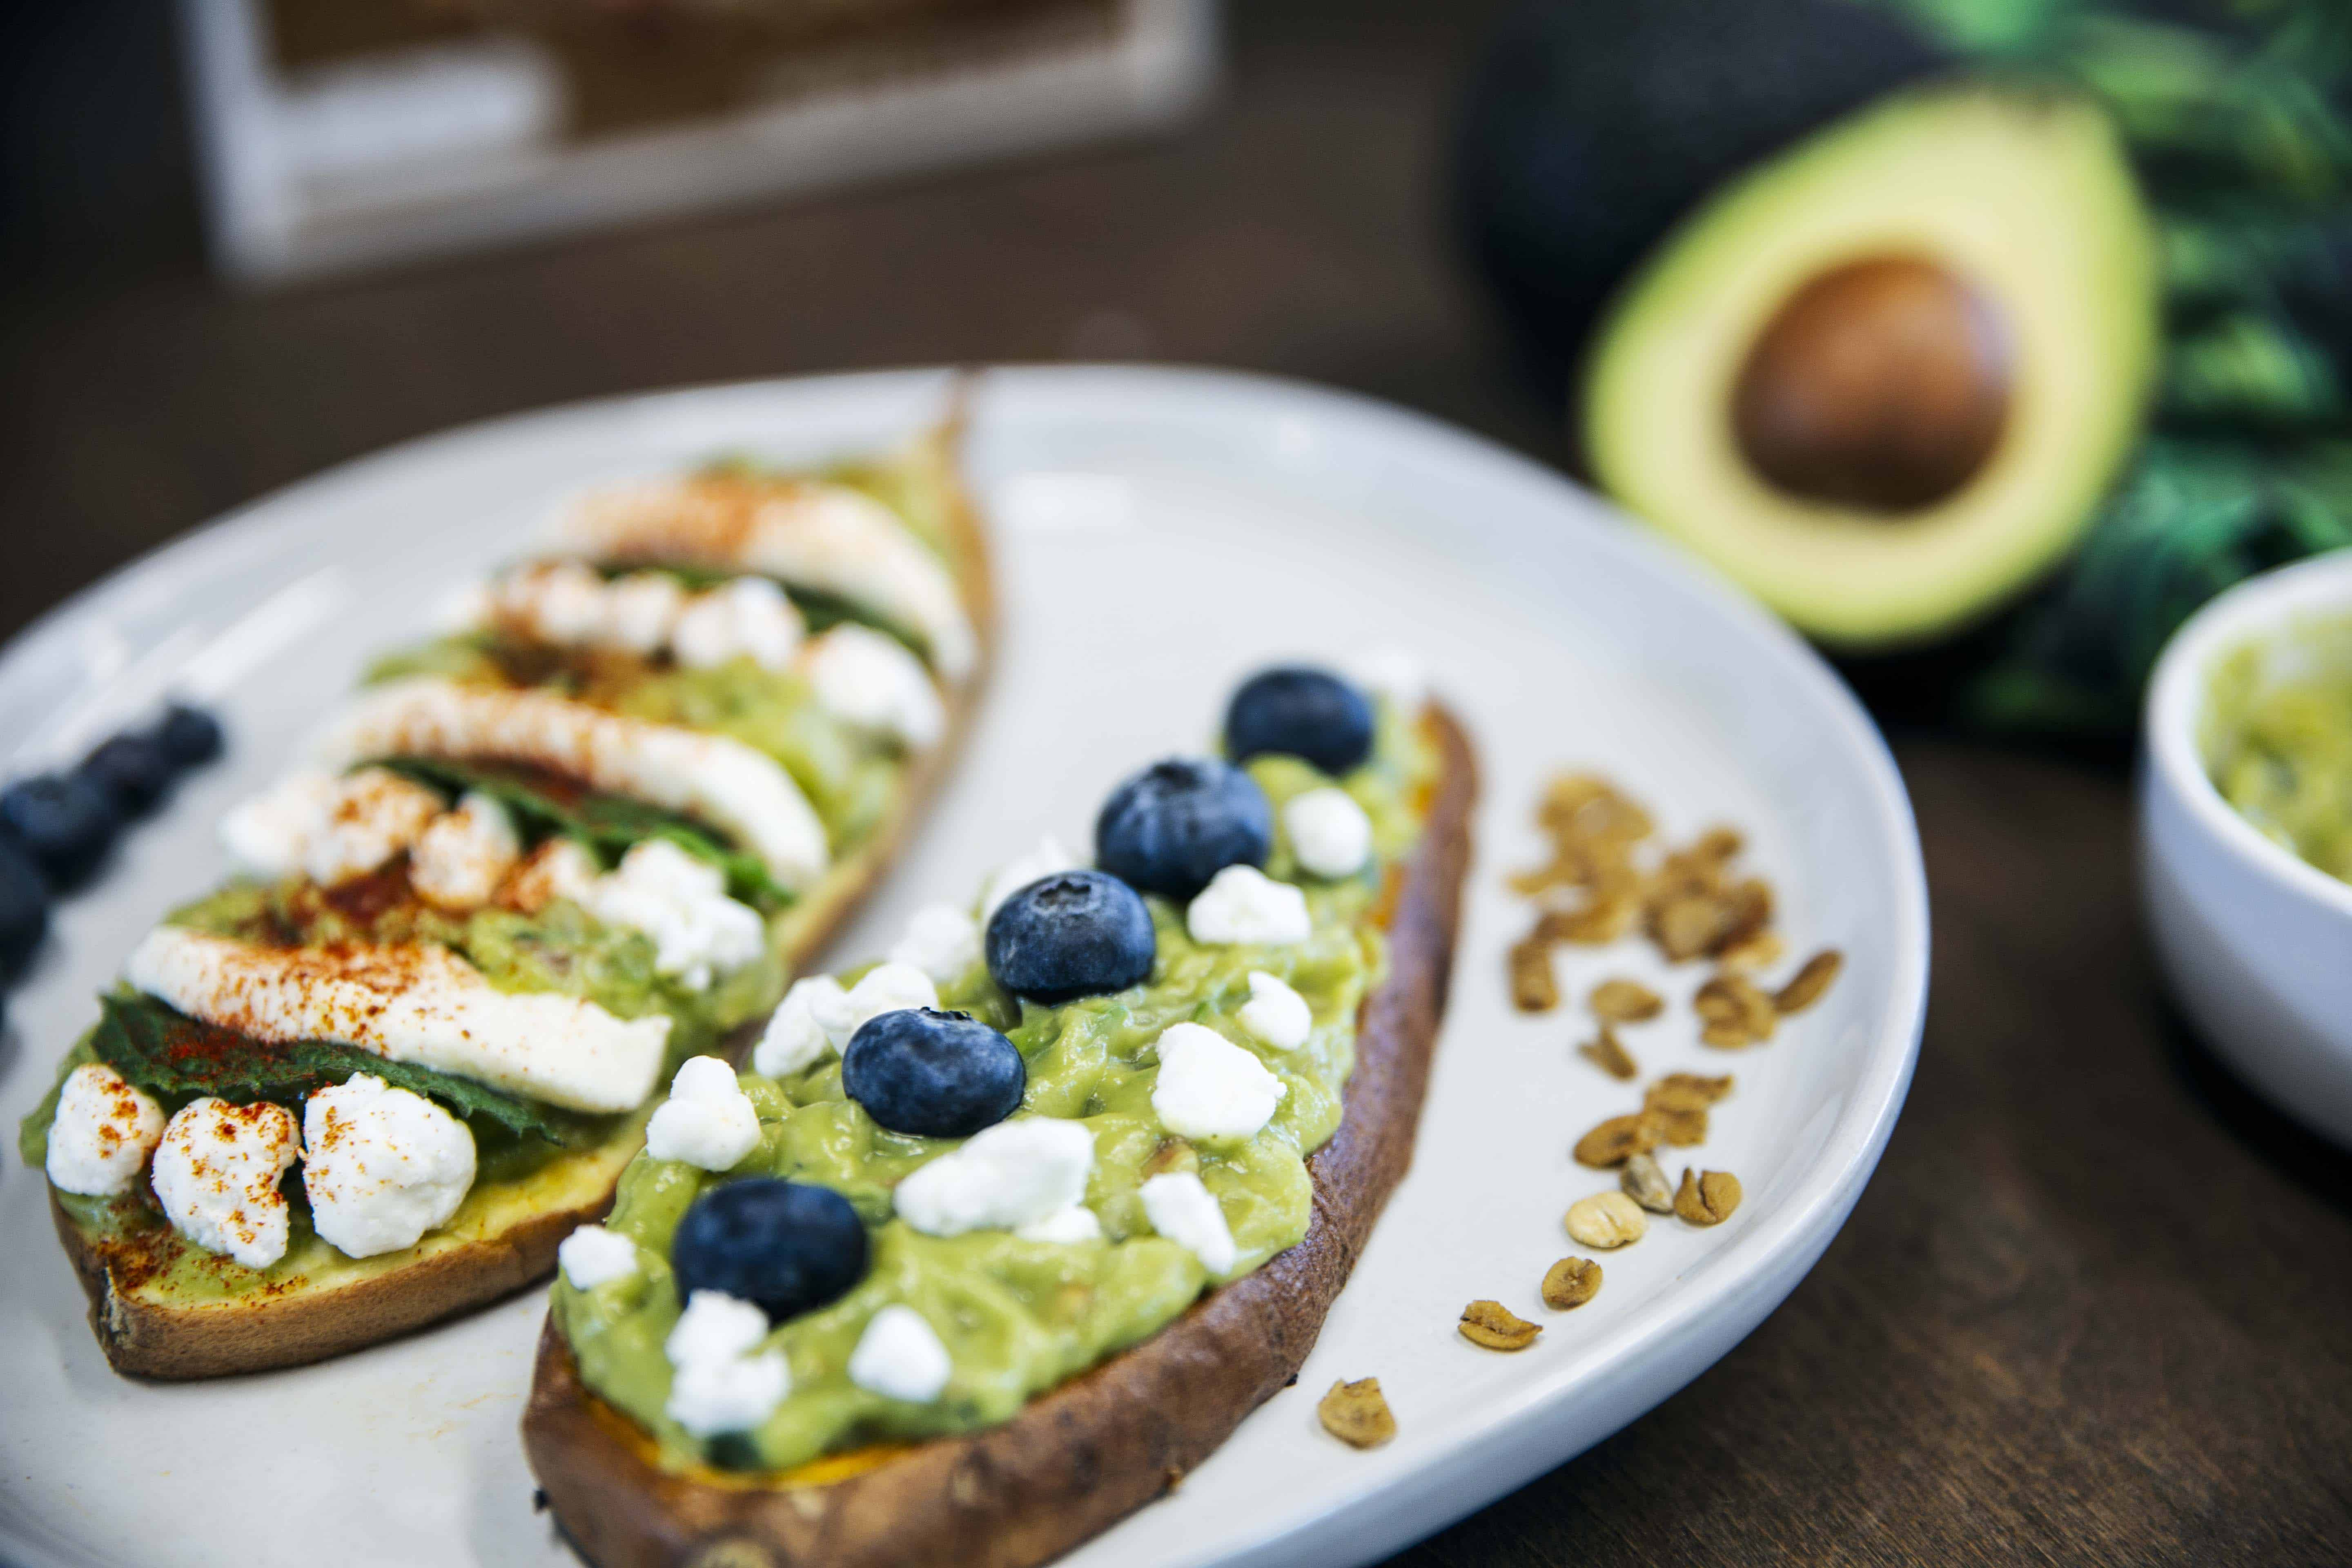 Sweet Potato Toast with Nut Butter